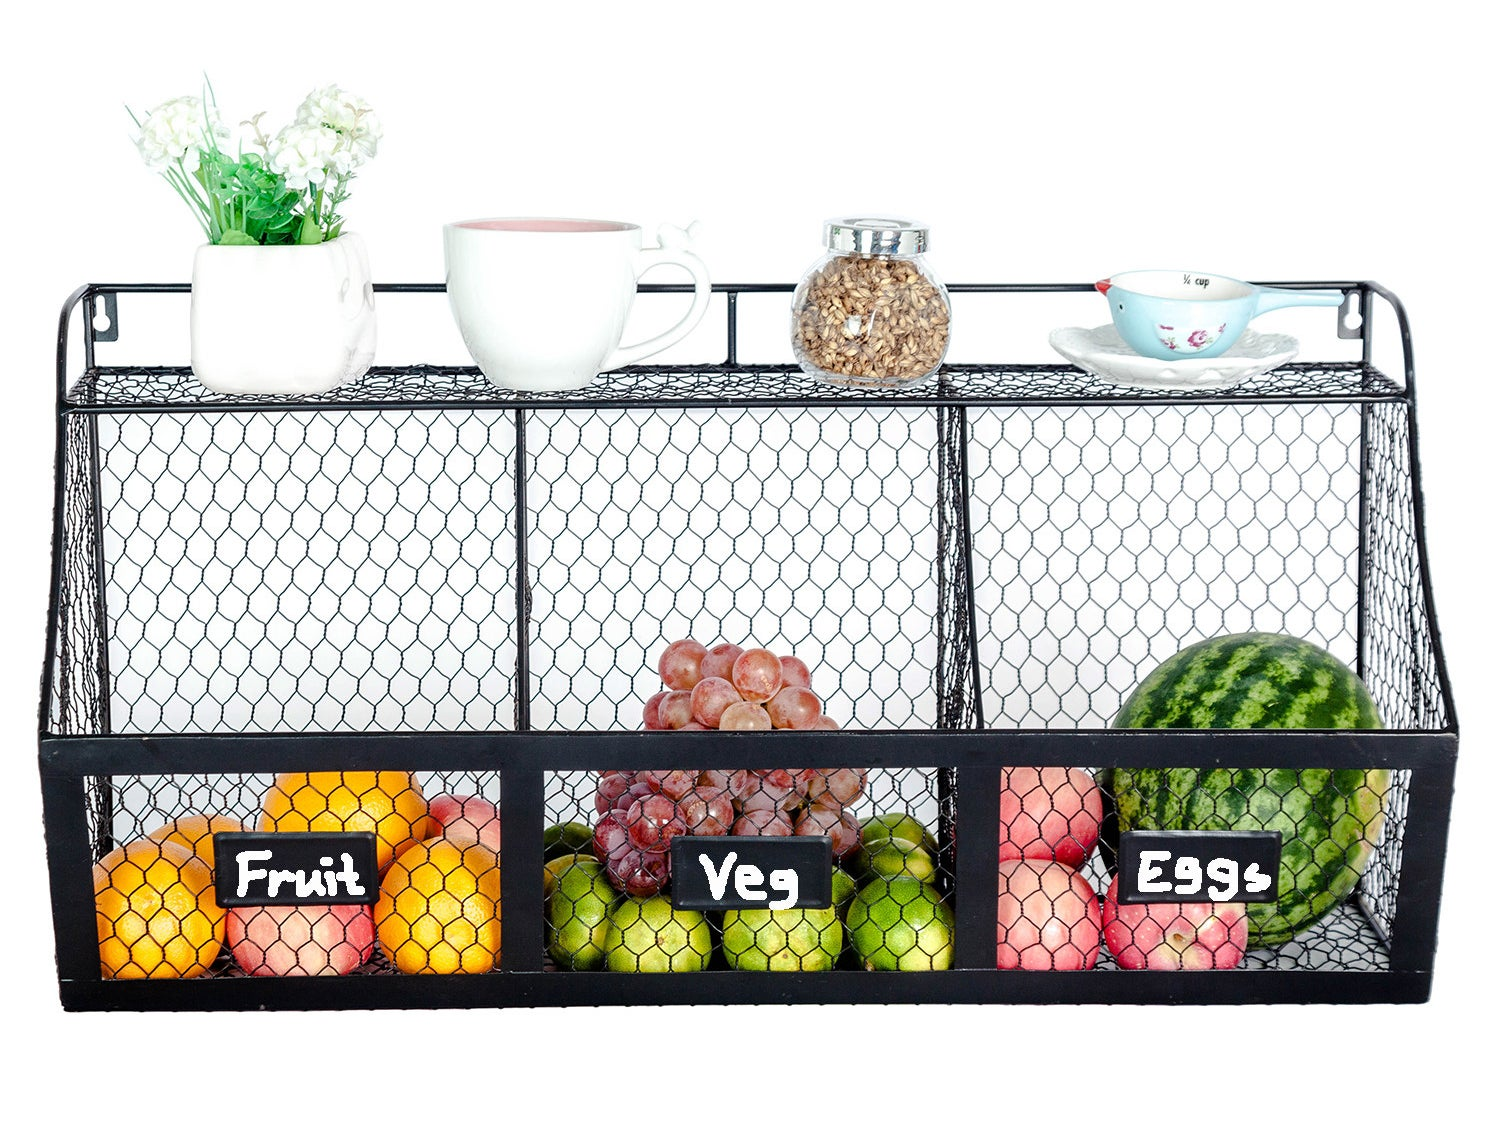 Black wire shelving with fruits inside